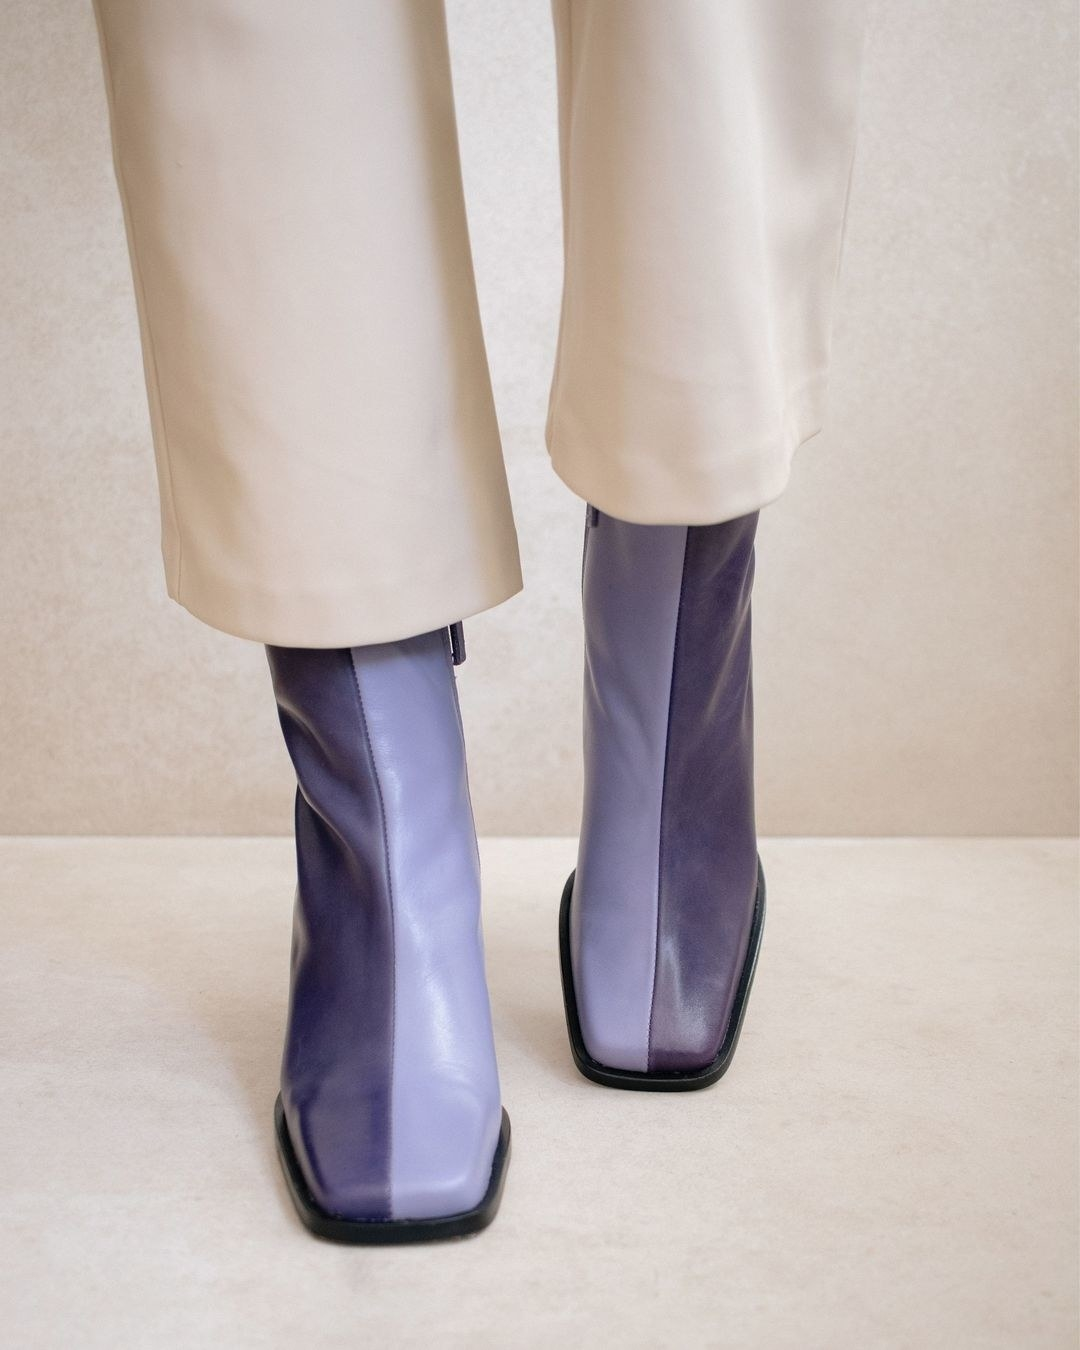 The two-tone purple boots with black soles